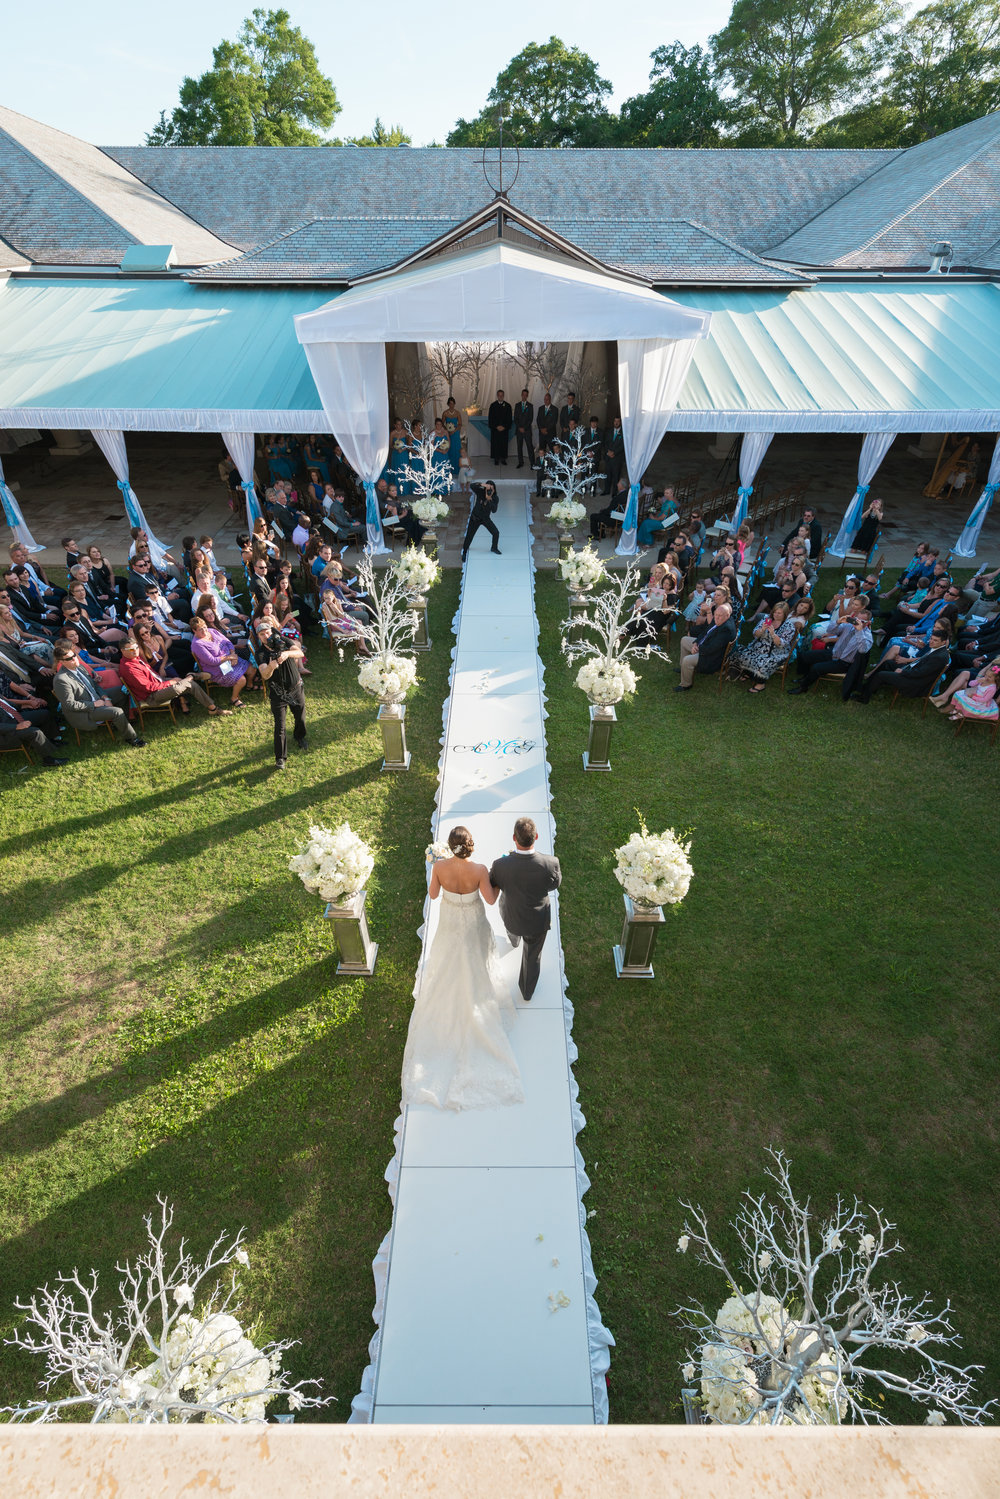 Carl-Kerridge-Photography-North-Beach-Wedding-May-2015-128.jpg